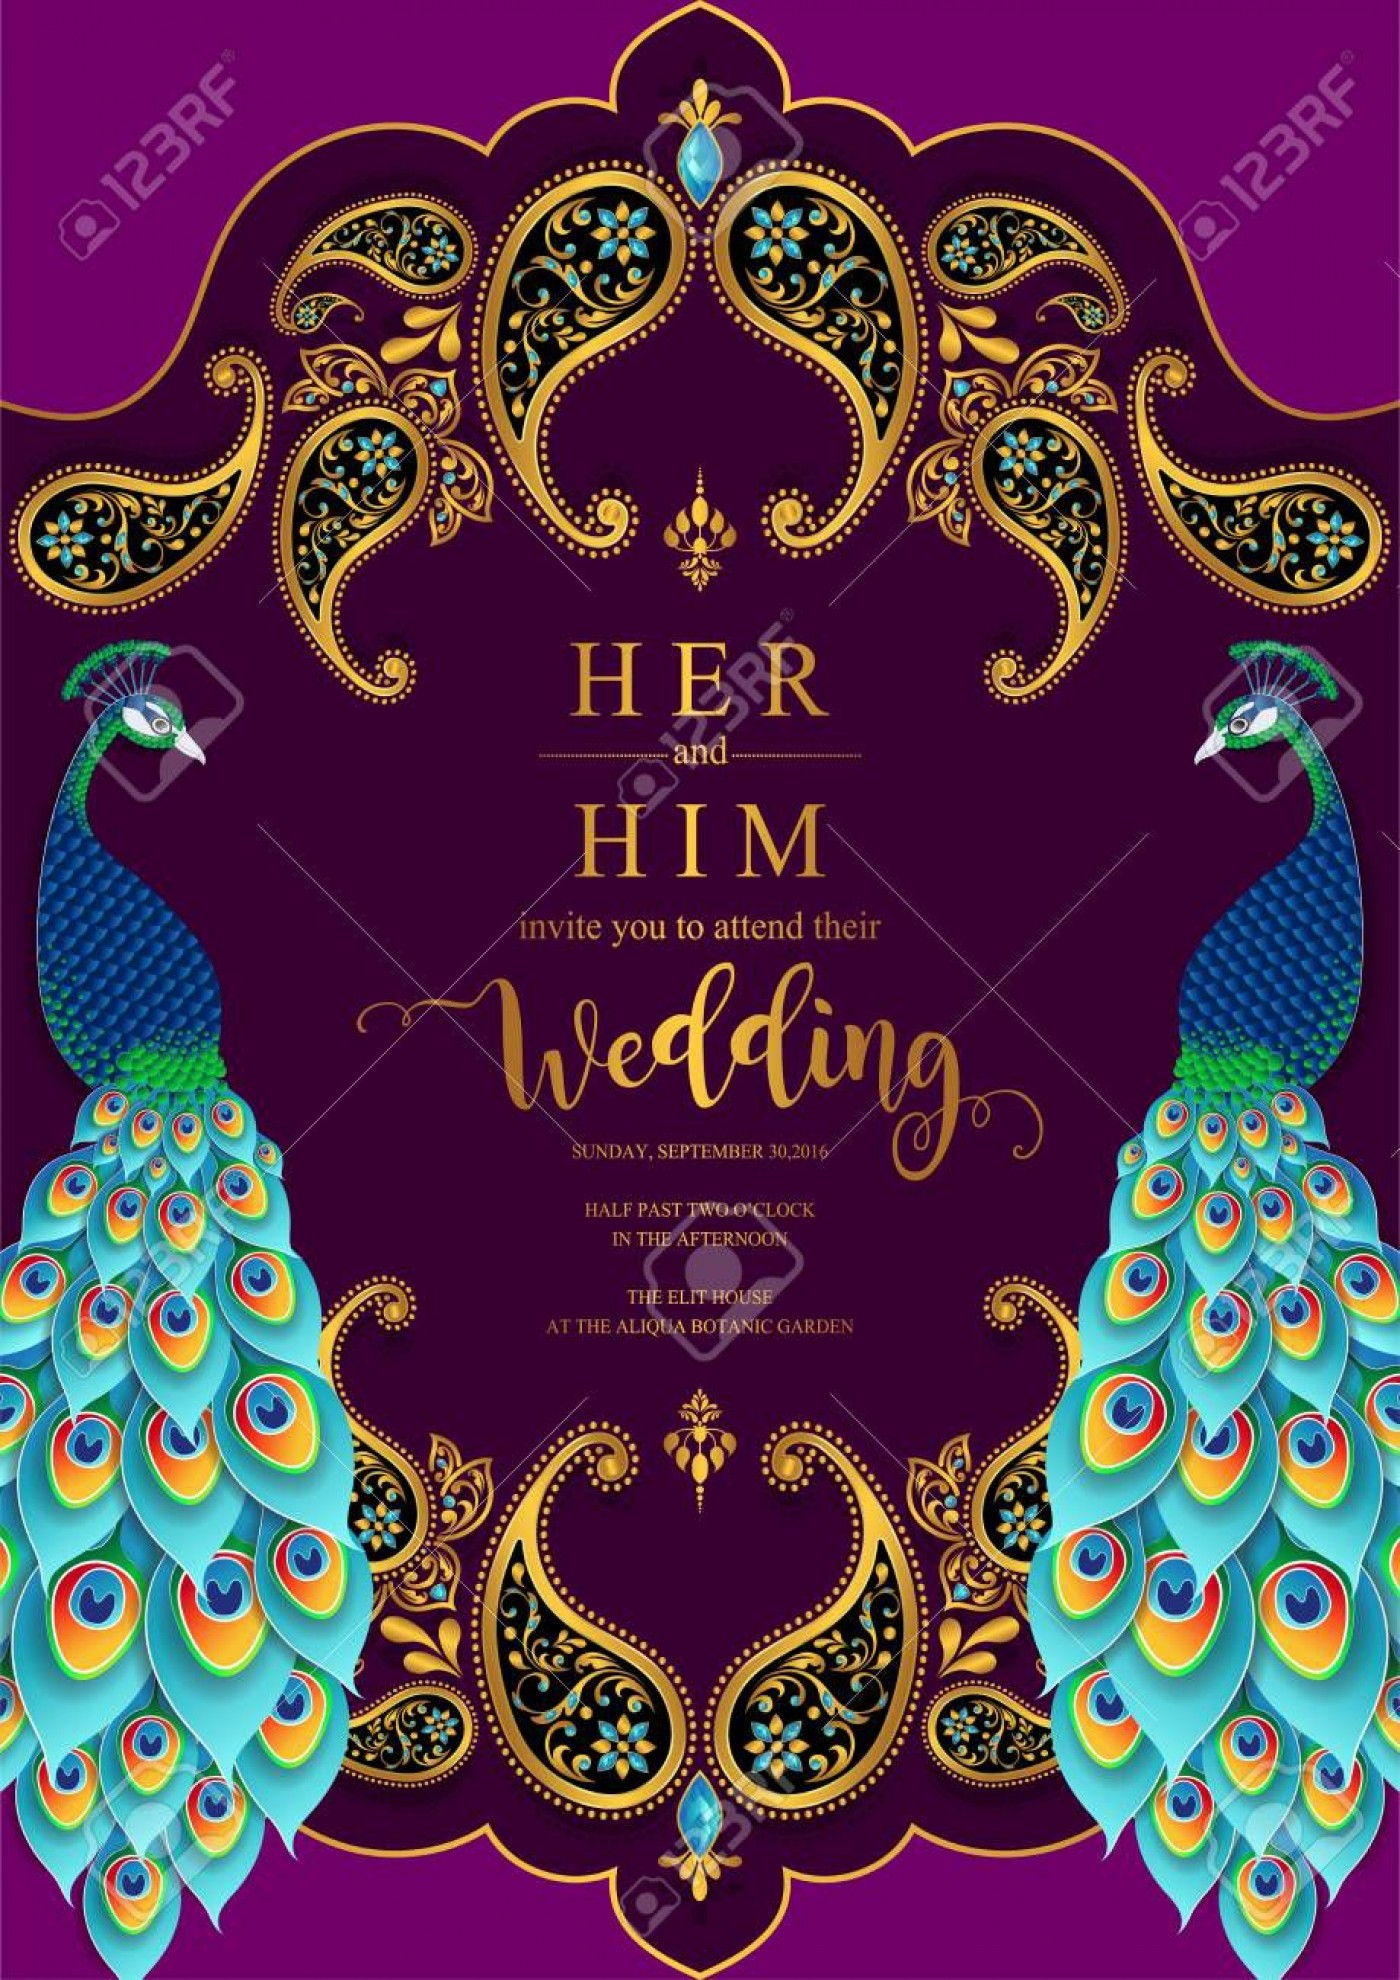 004 Astounding Indian Wedding Invitation Template Photo  Psd Free Download Marriage Online For Friend1400